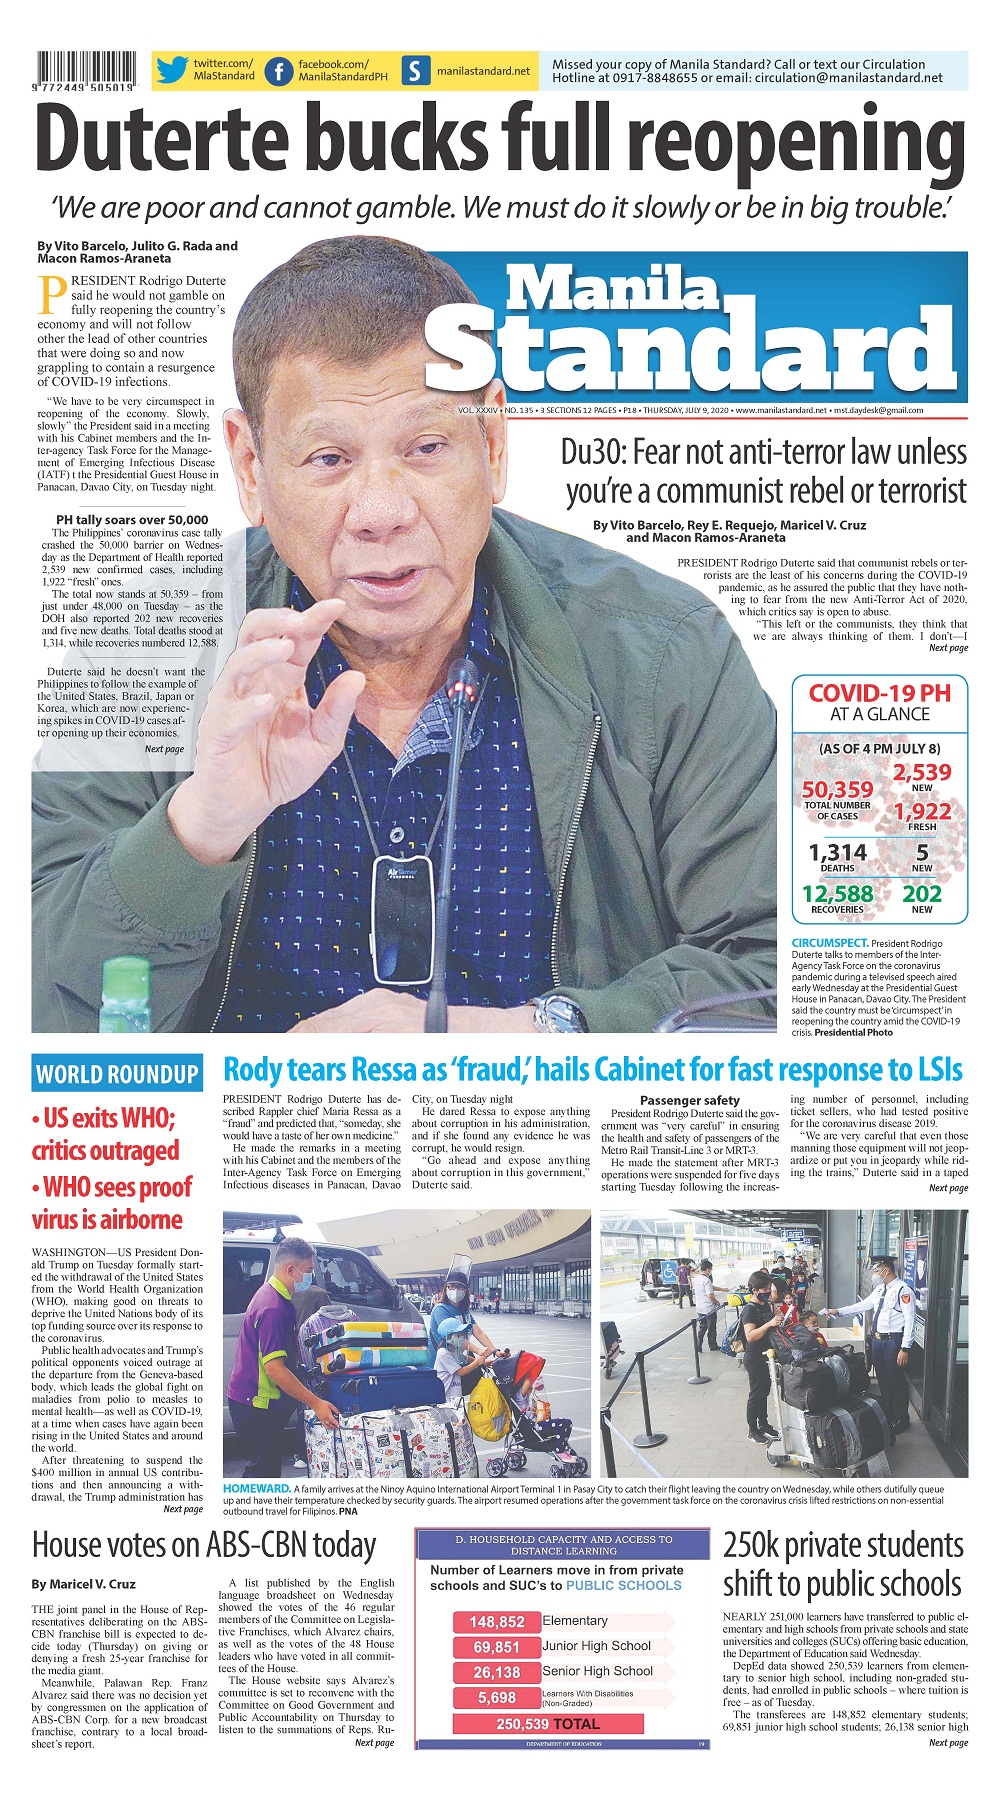 Thursday Print Edition (07/09/2020)